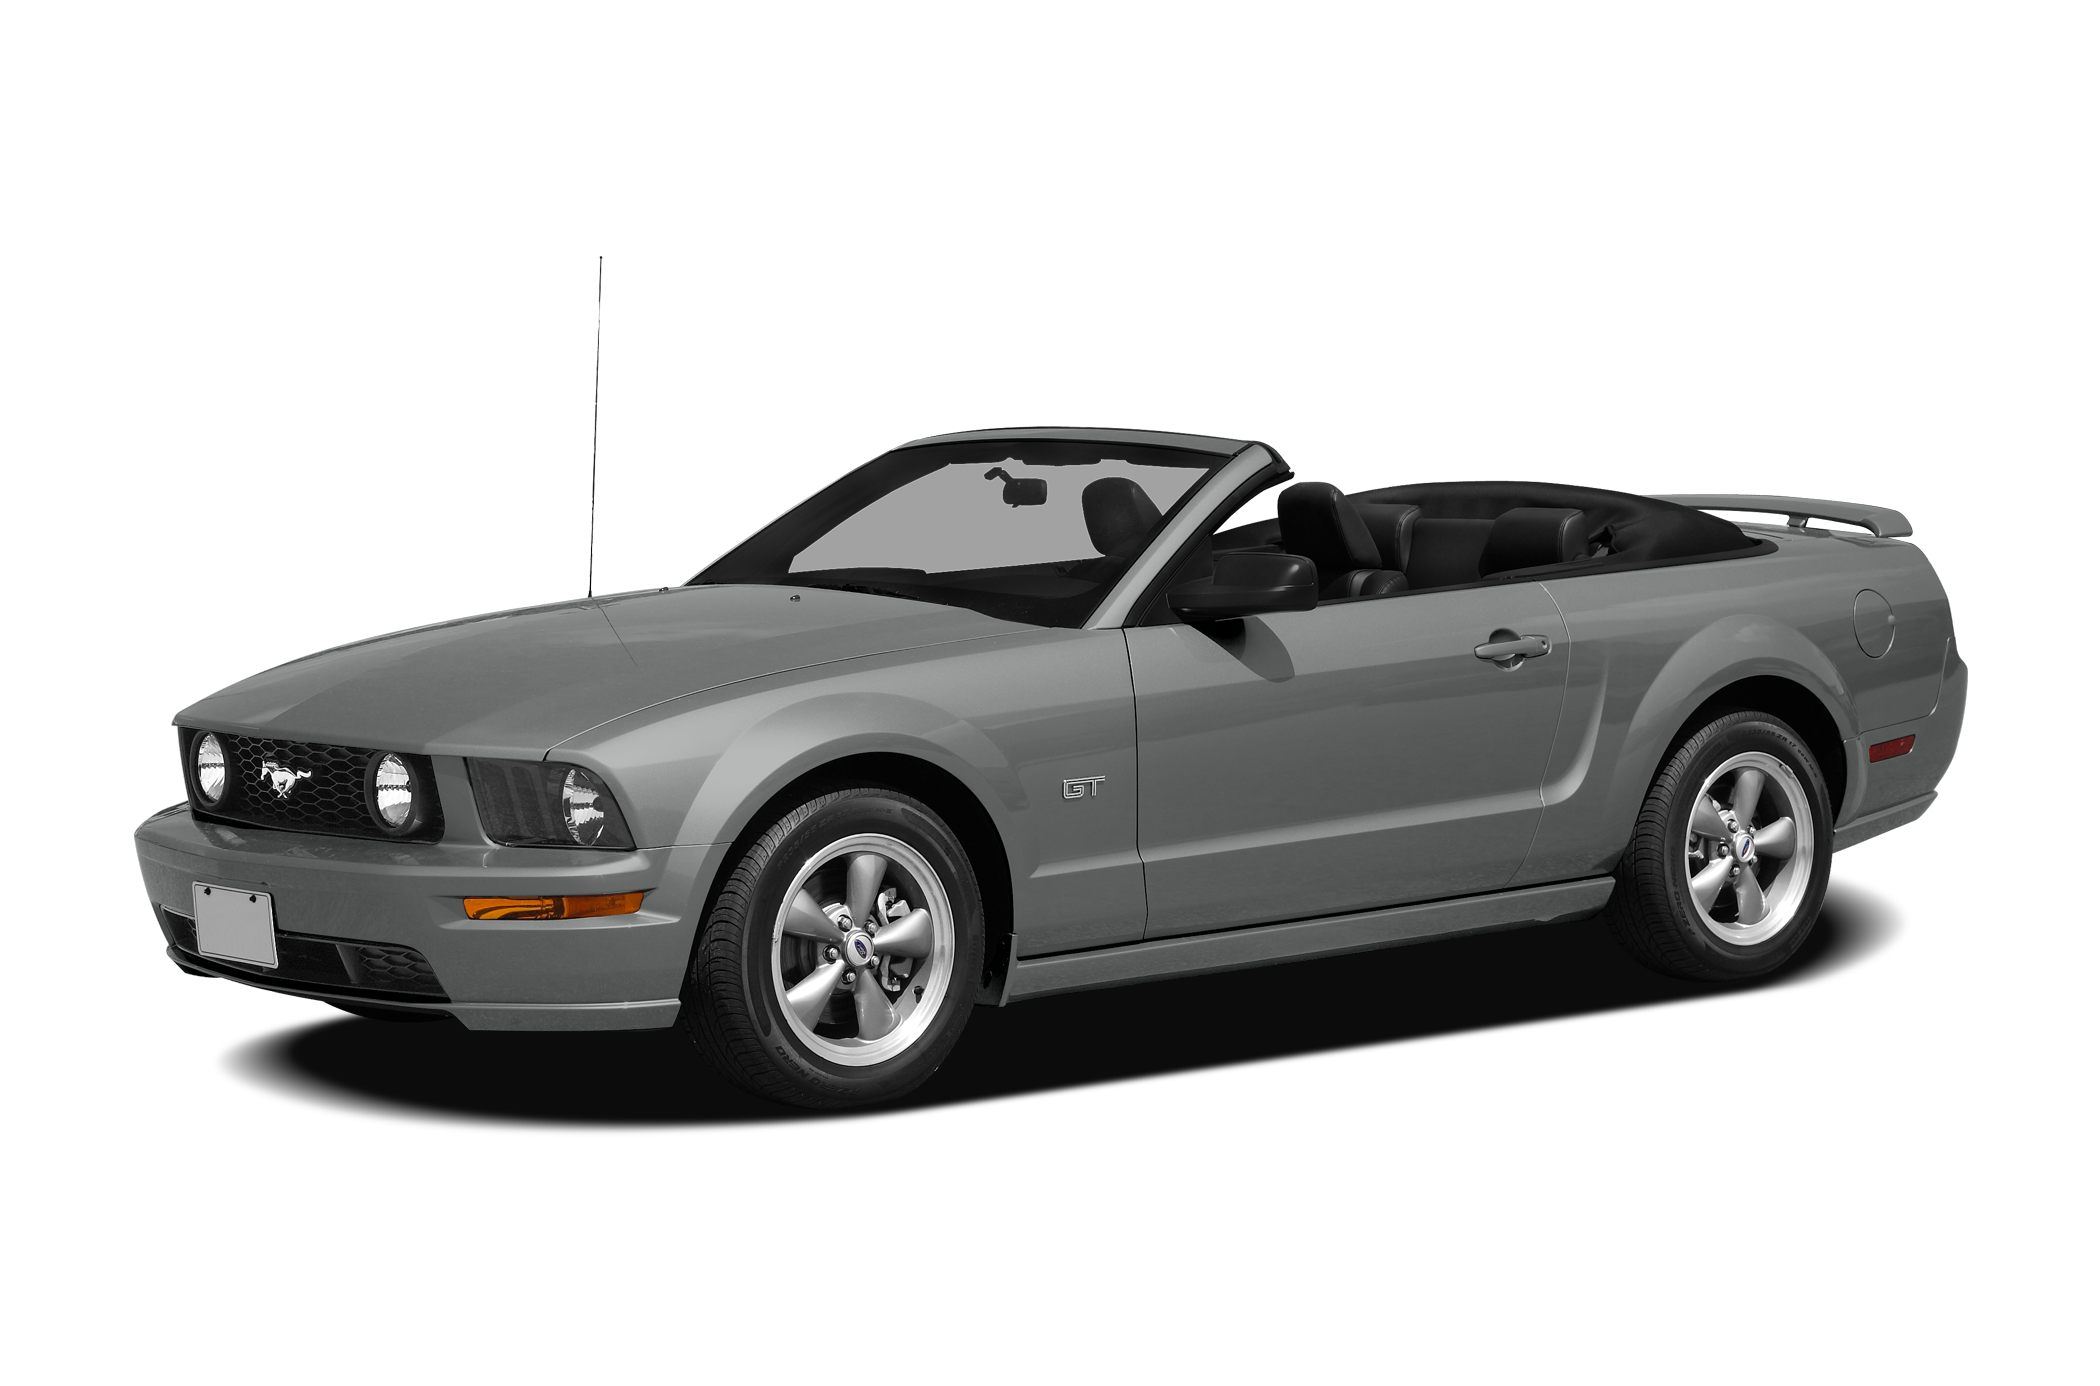 2008 Ford Mustang V6 Premium OUR PRICESYoure probably wondering why our prices are so much lower